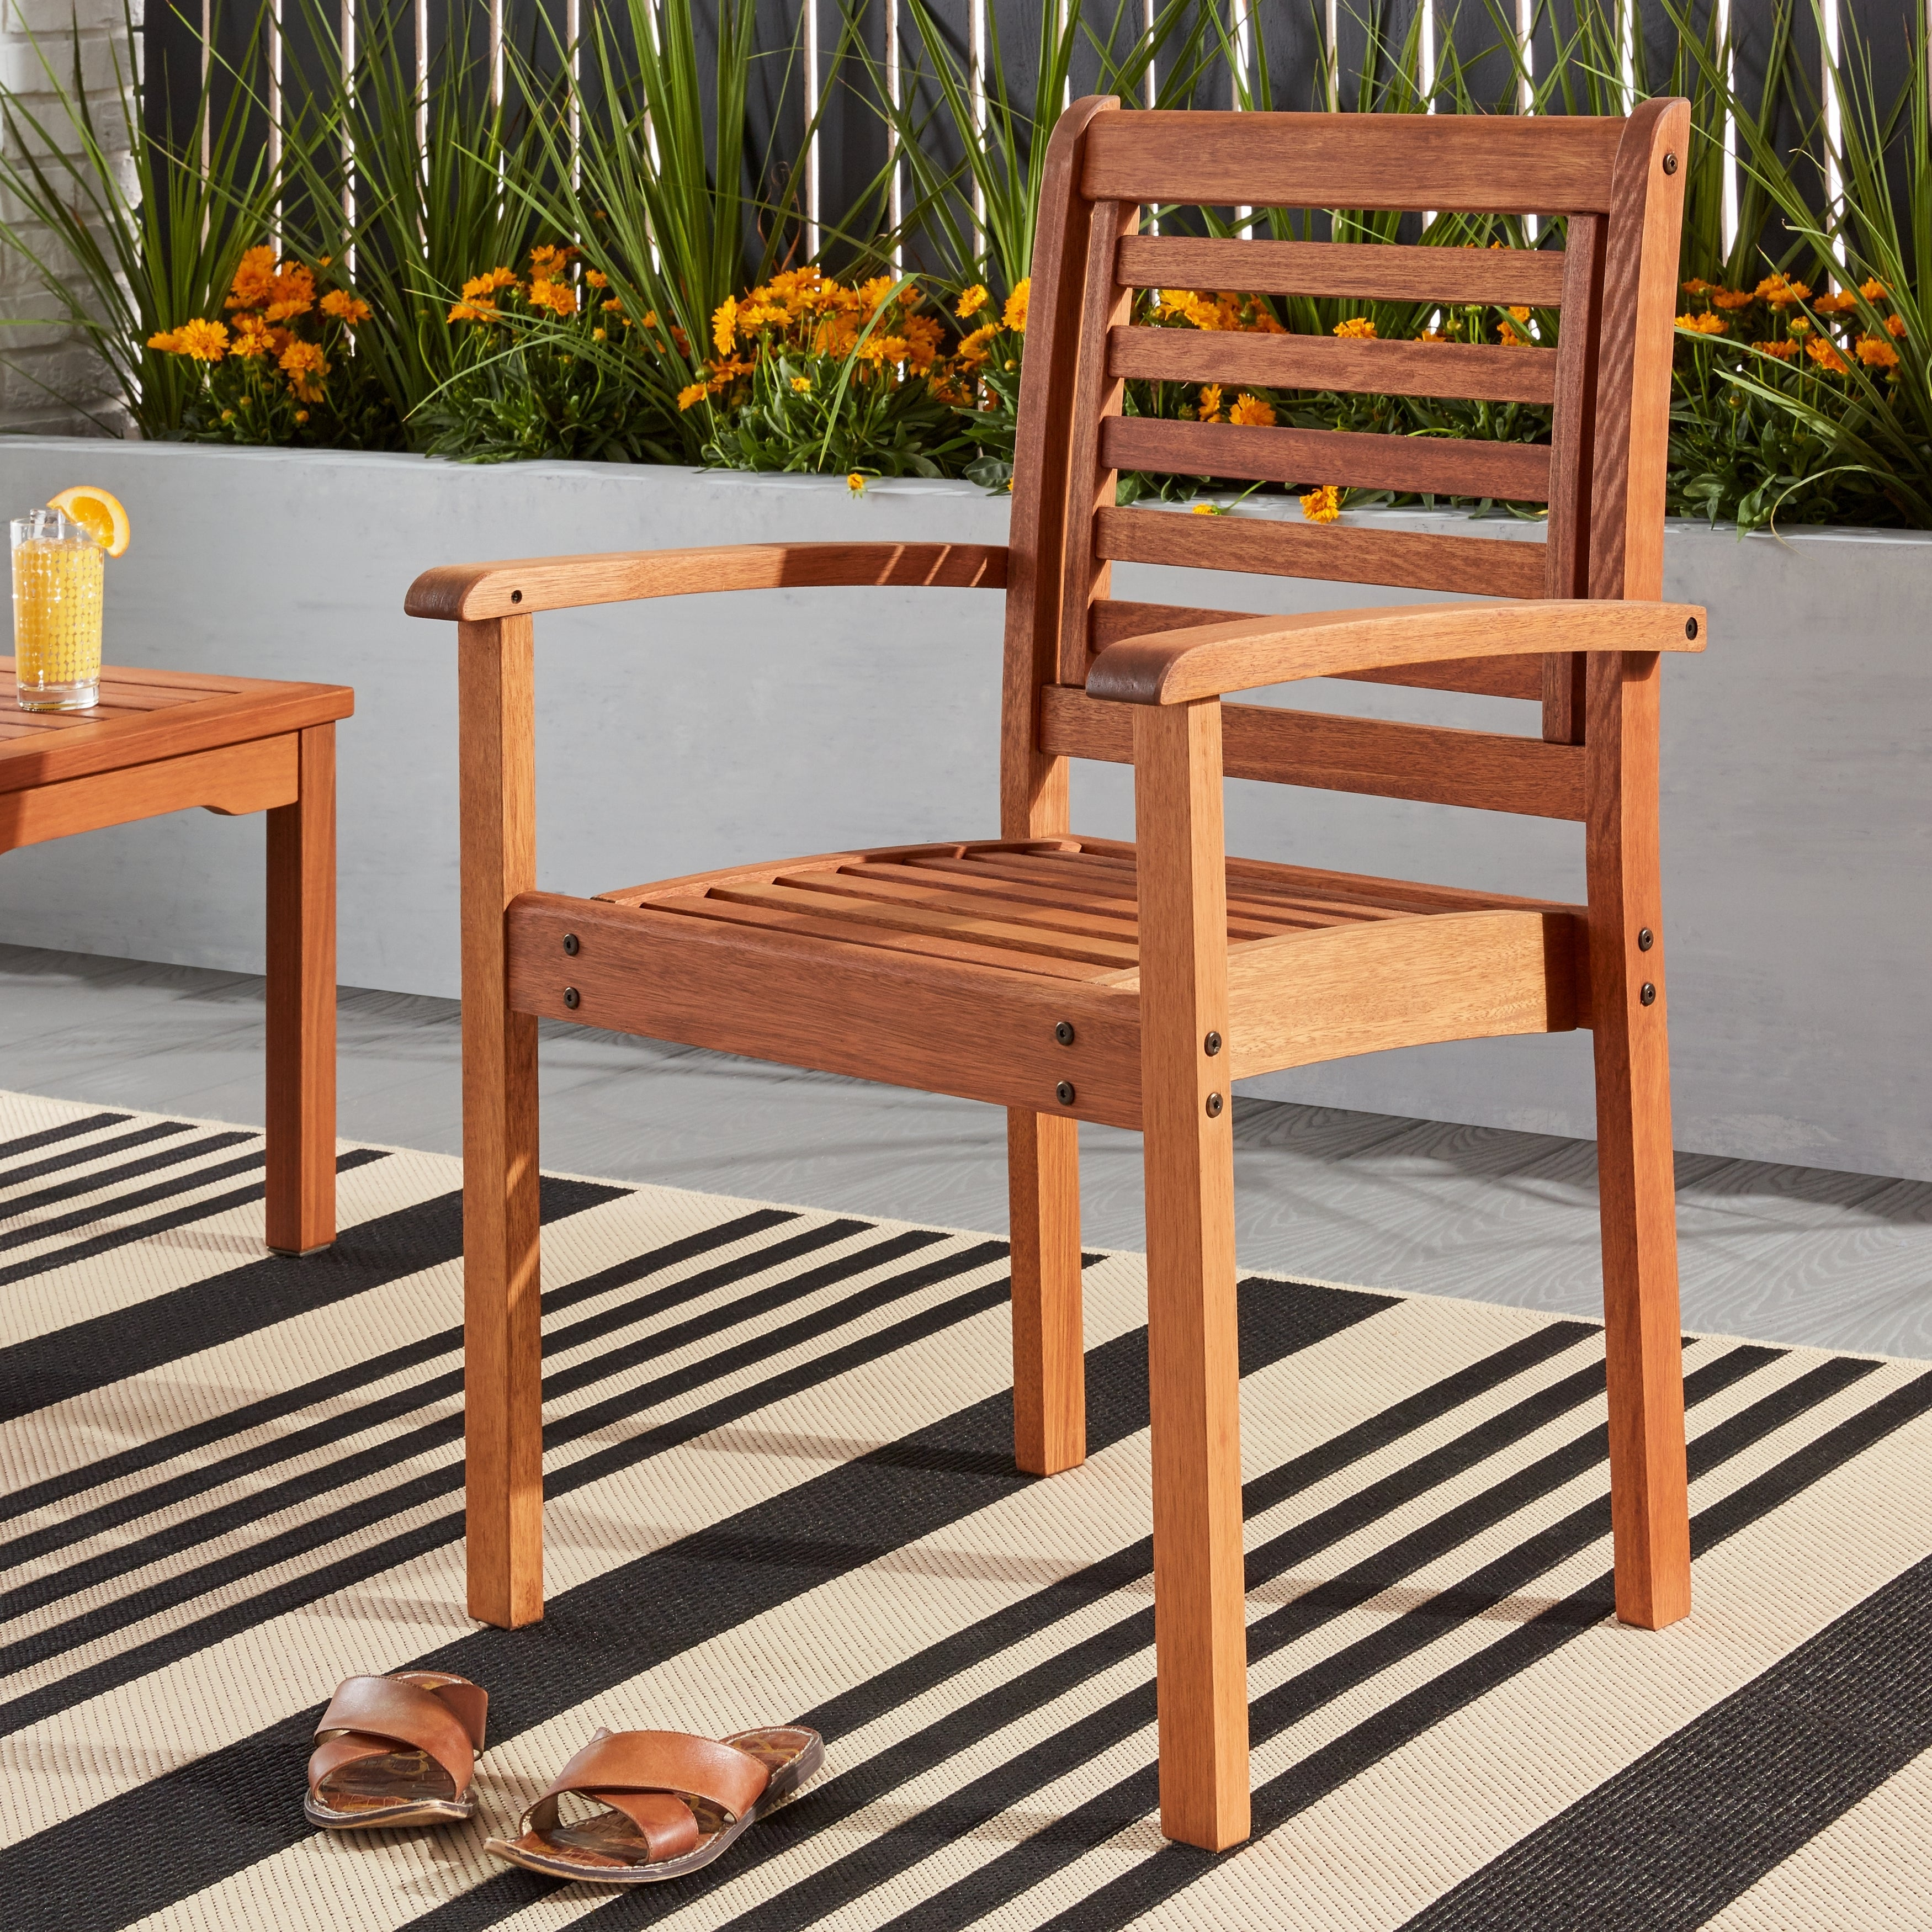 Shop amazonia eucalyptus wood stackable chair free shipping on orders over 45 overstock com 2520880